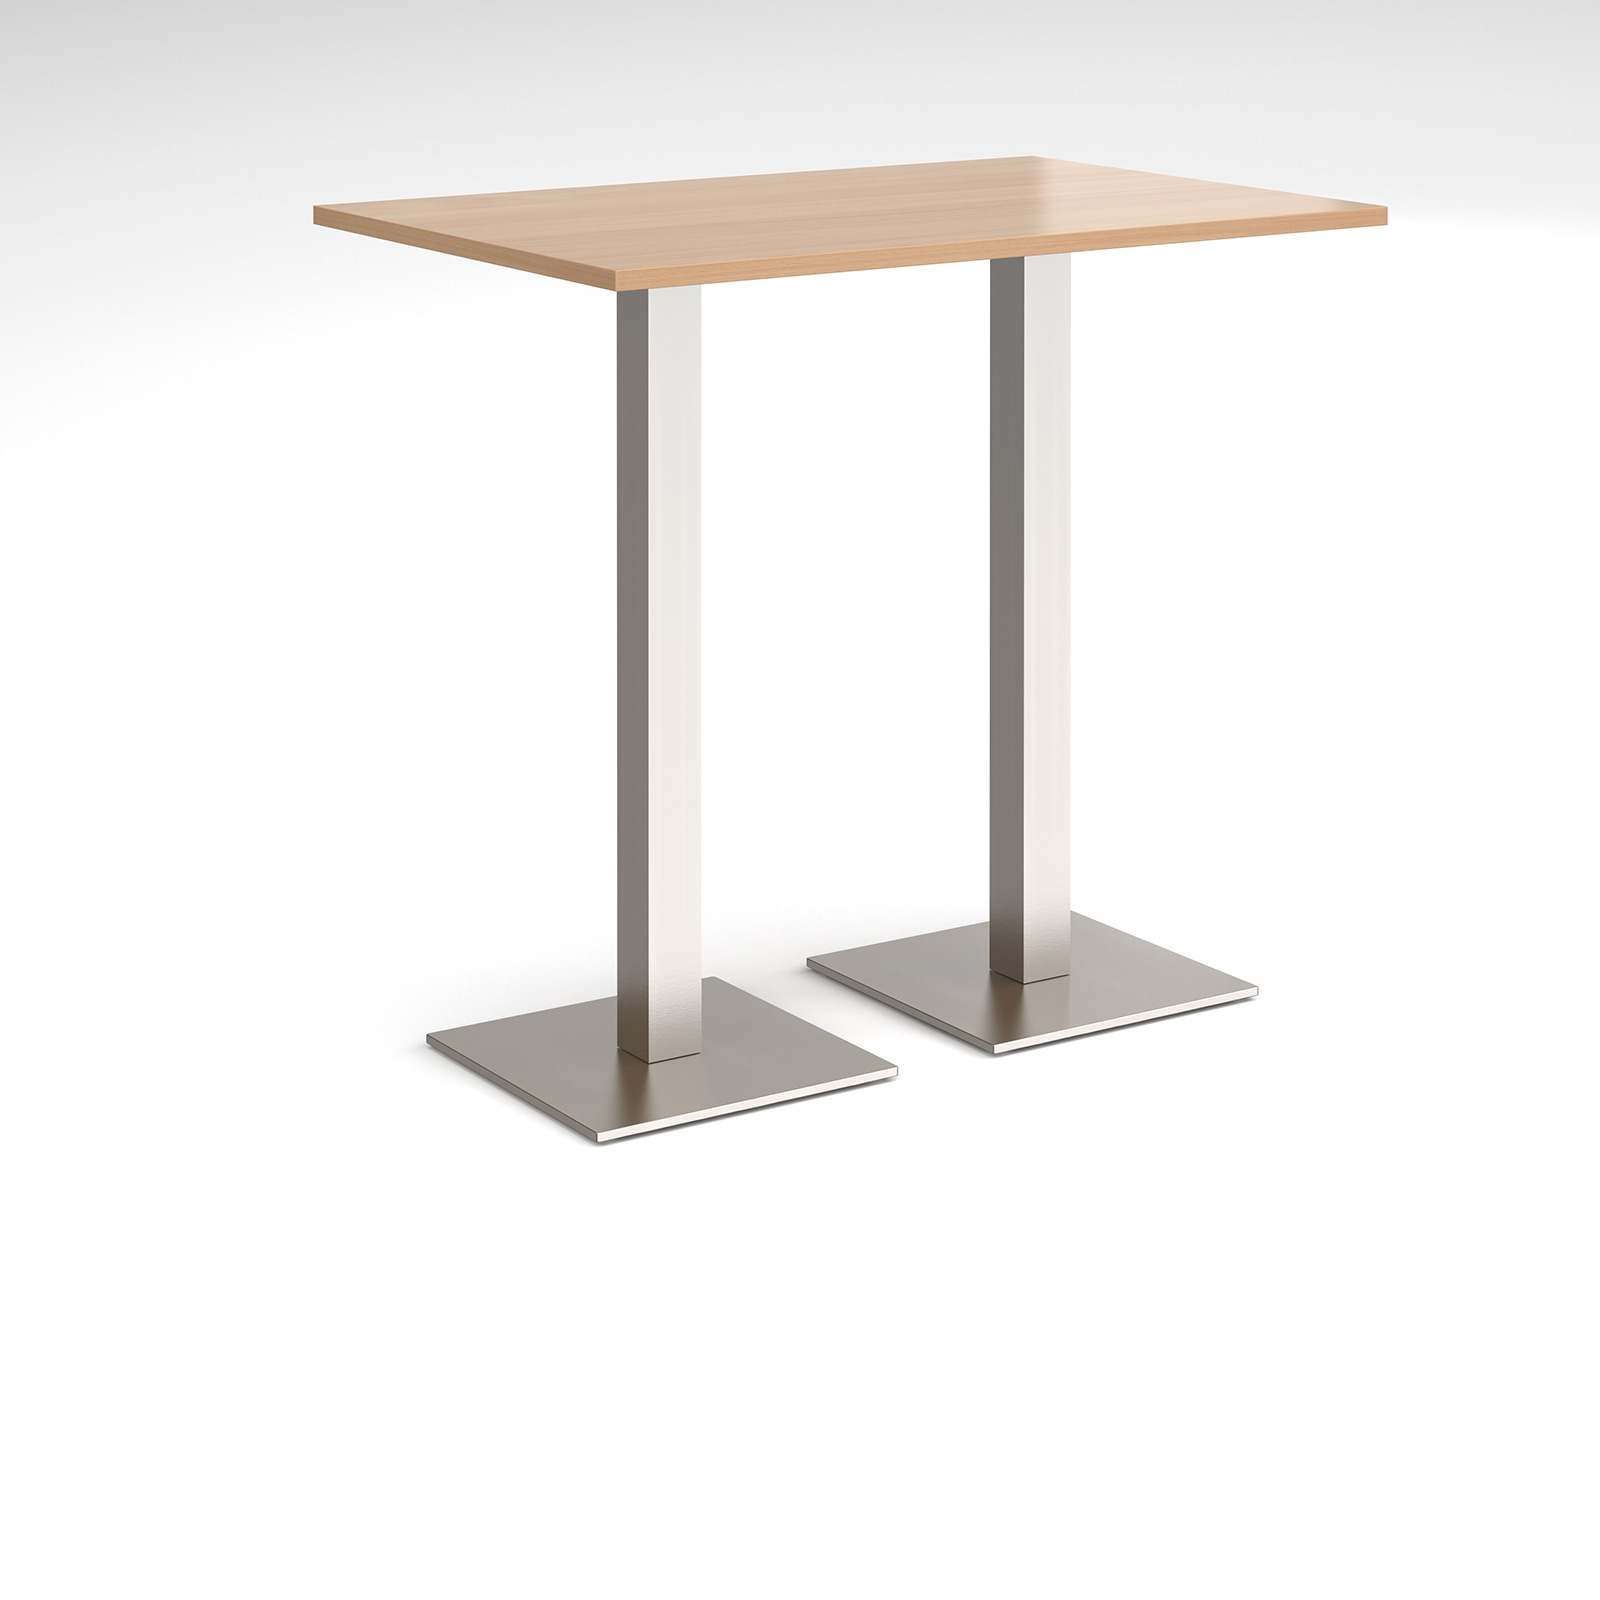 Brescia rectangular poseur table with square bases